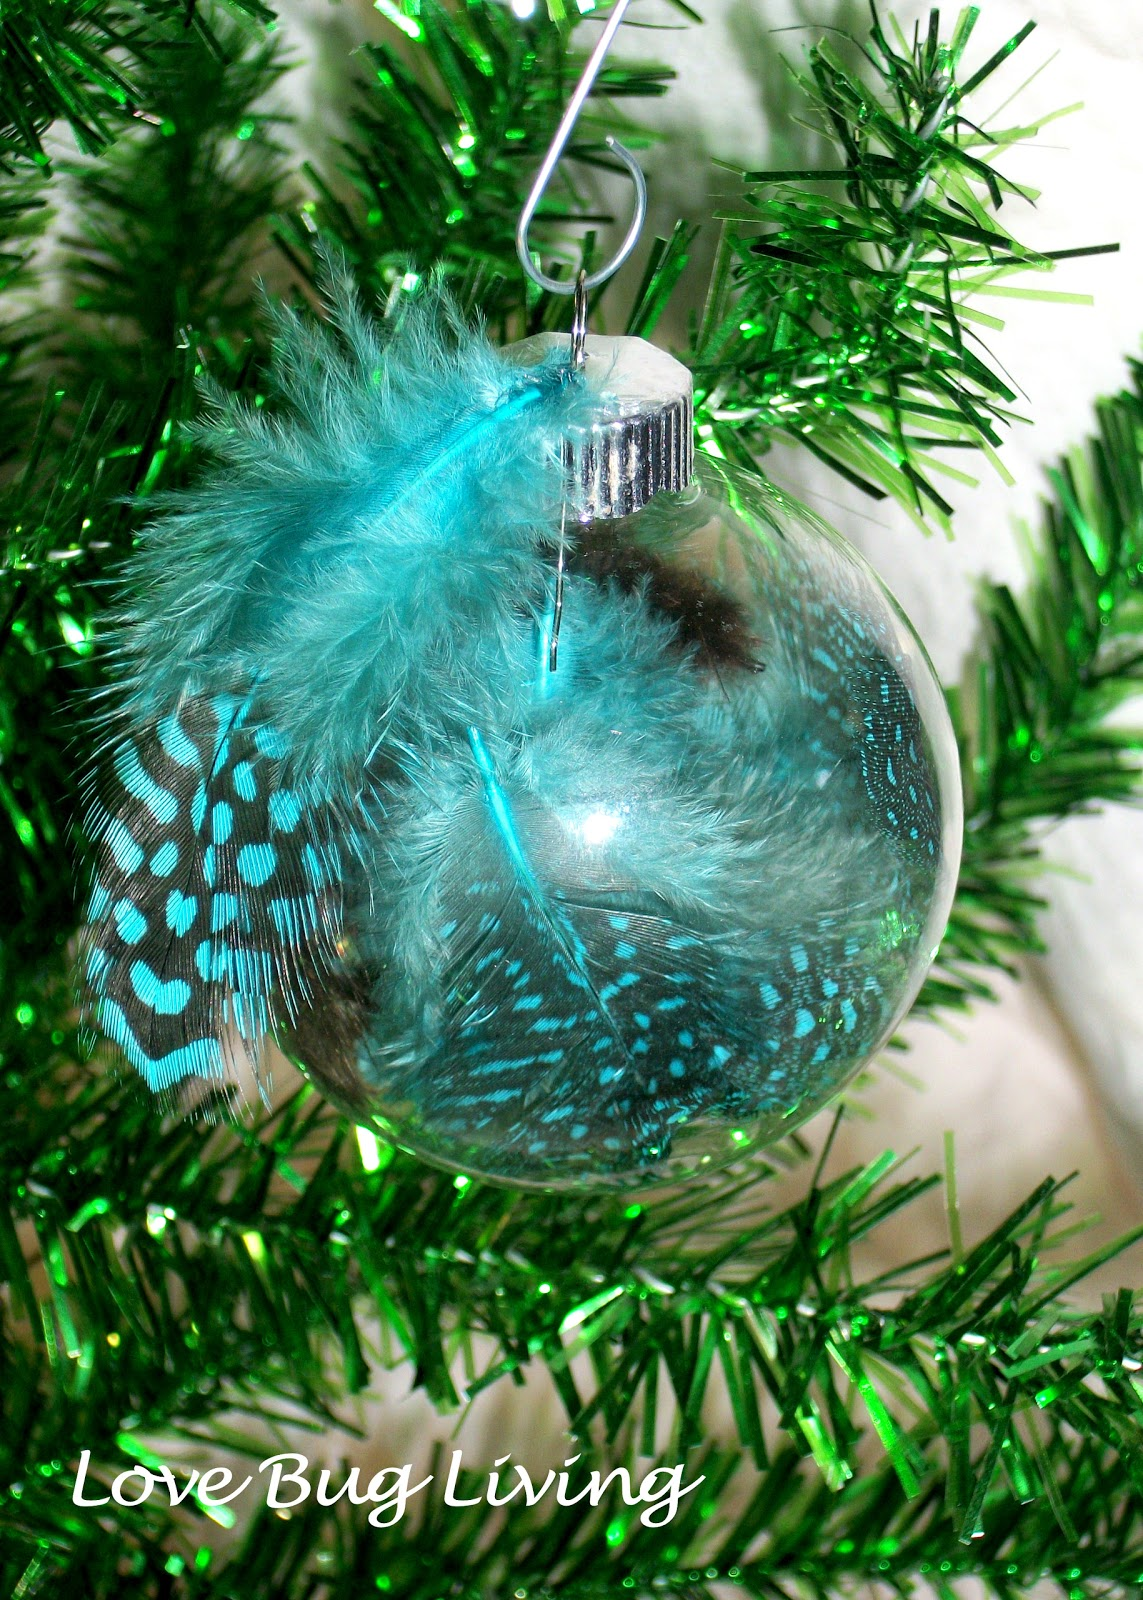 Love bug living ways to personalize glass ball ornaments